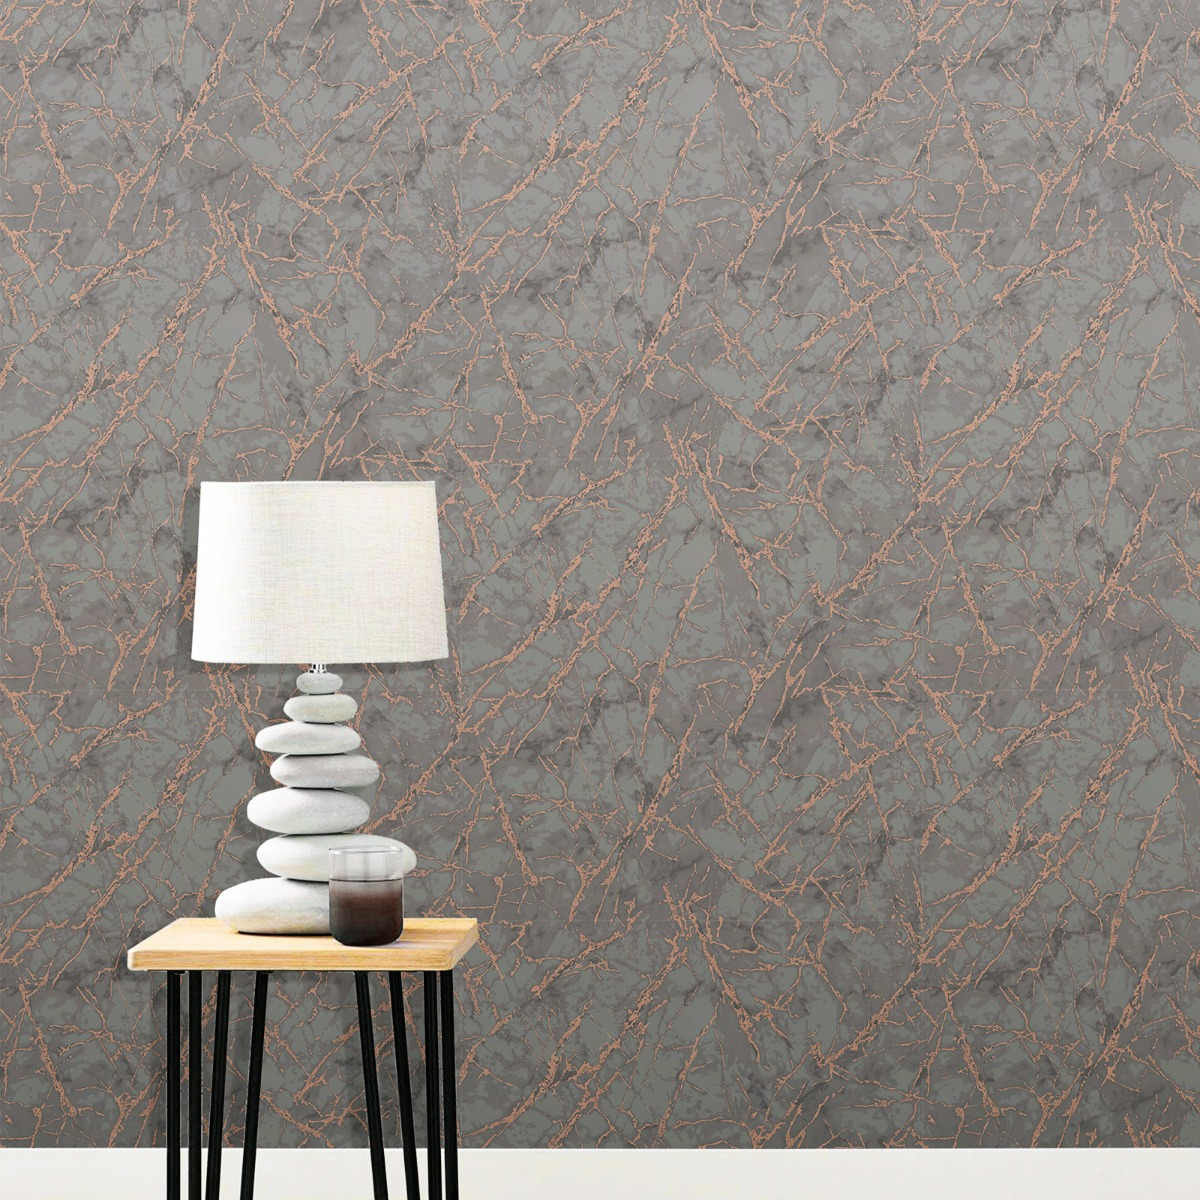 Metallic Marble Wallpaper Charcoal and Copper Fine Décor